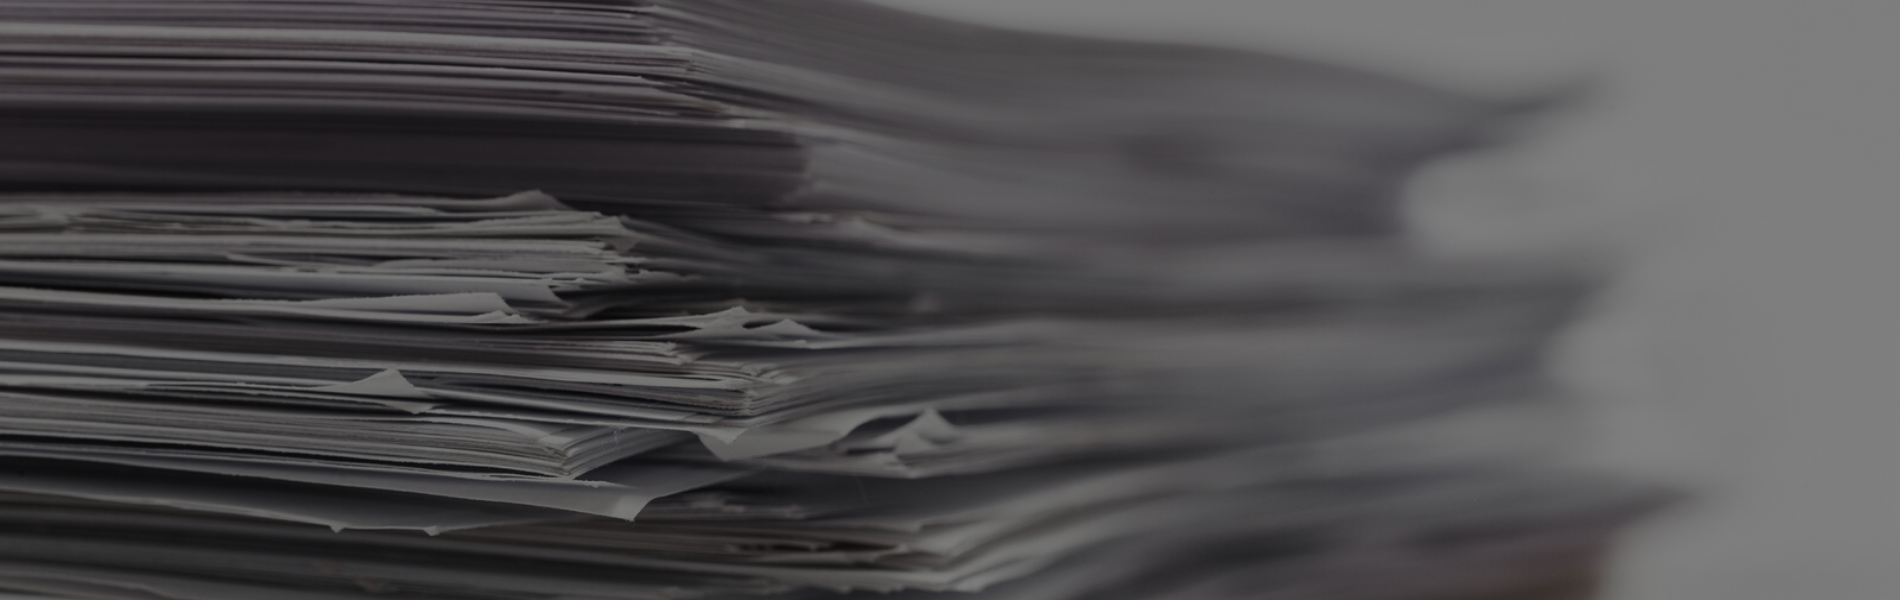 Photo of stacks of paper